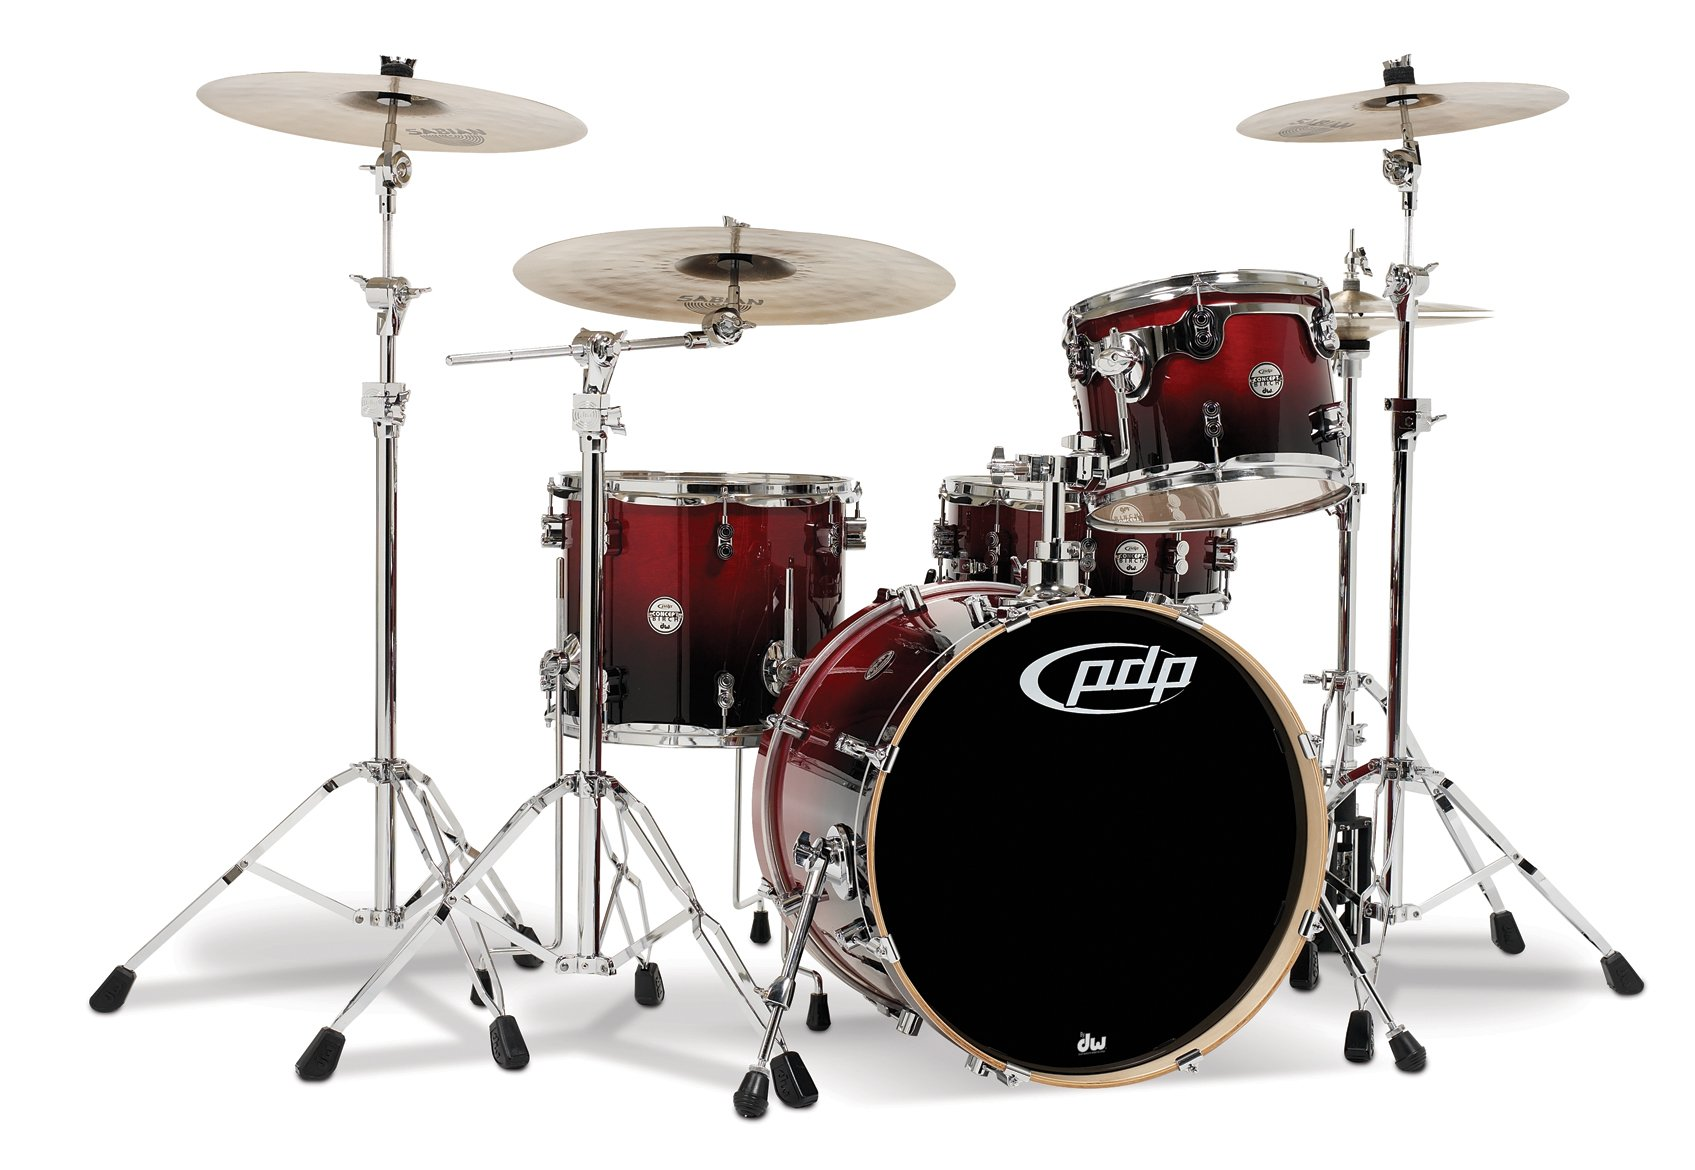 Pacific Drums PDCB2014CB Concept Series 4-Piece Drum Set - Cherry to Black Fade